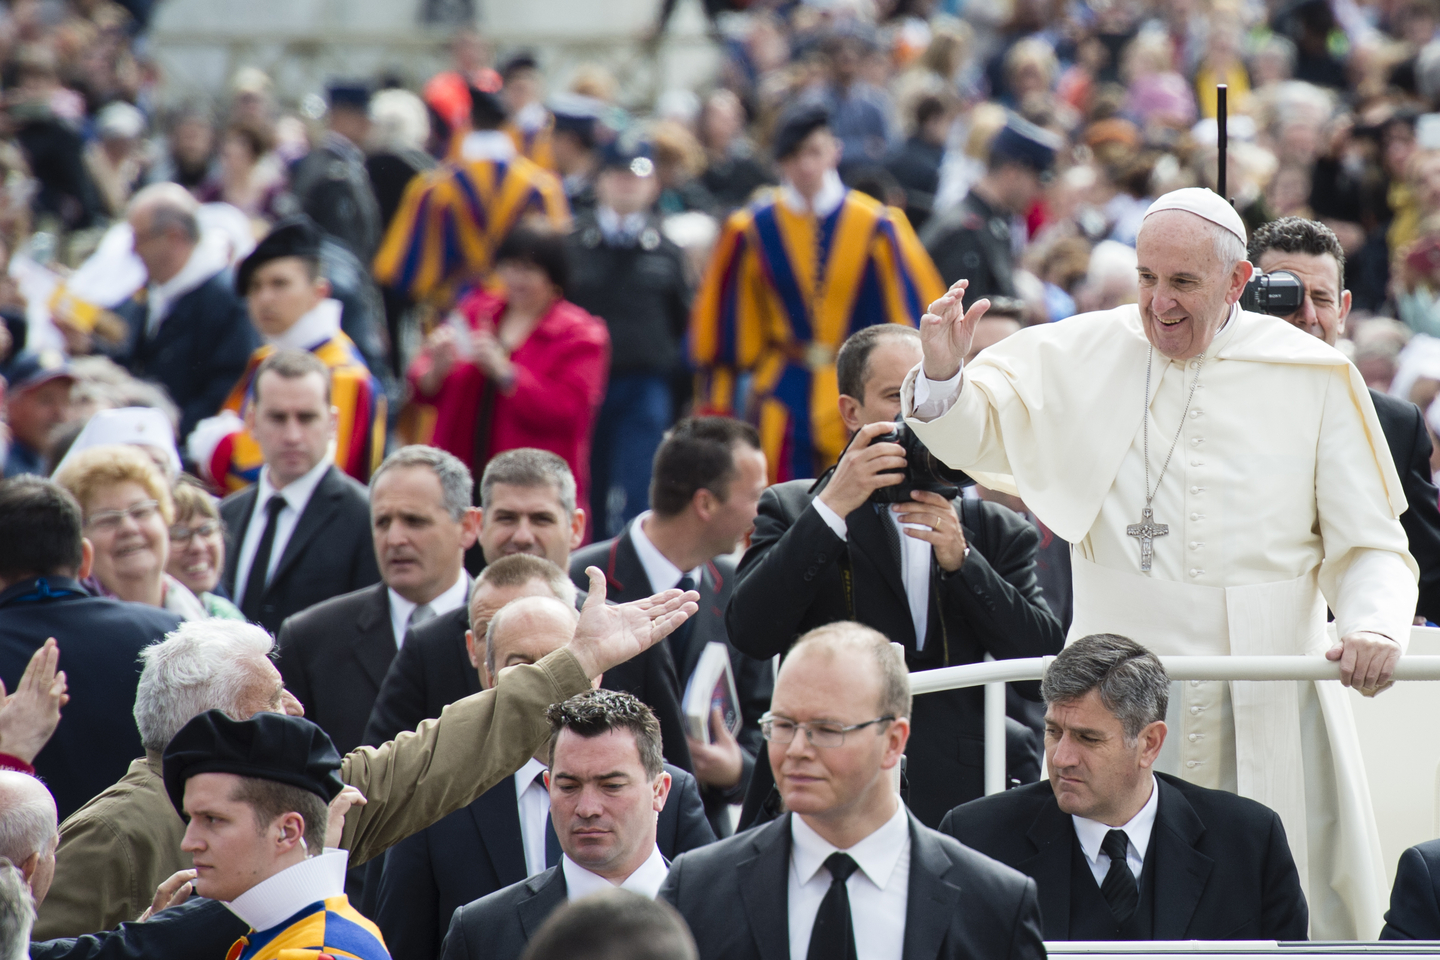 Pope Francis general Audience April 26, 2016